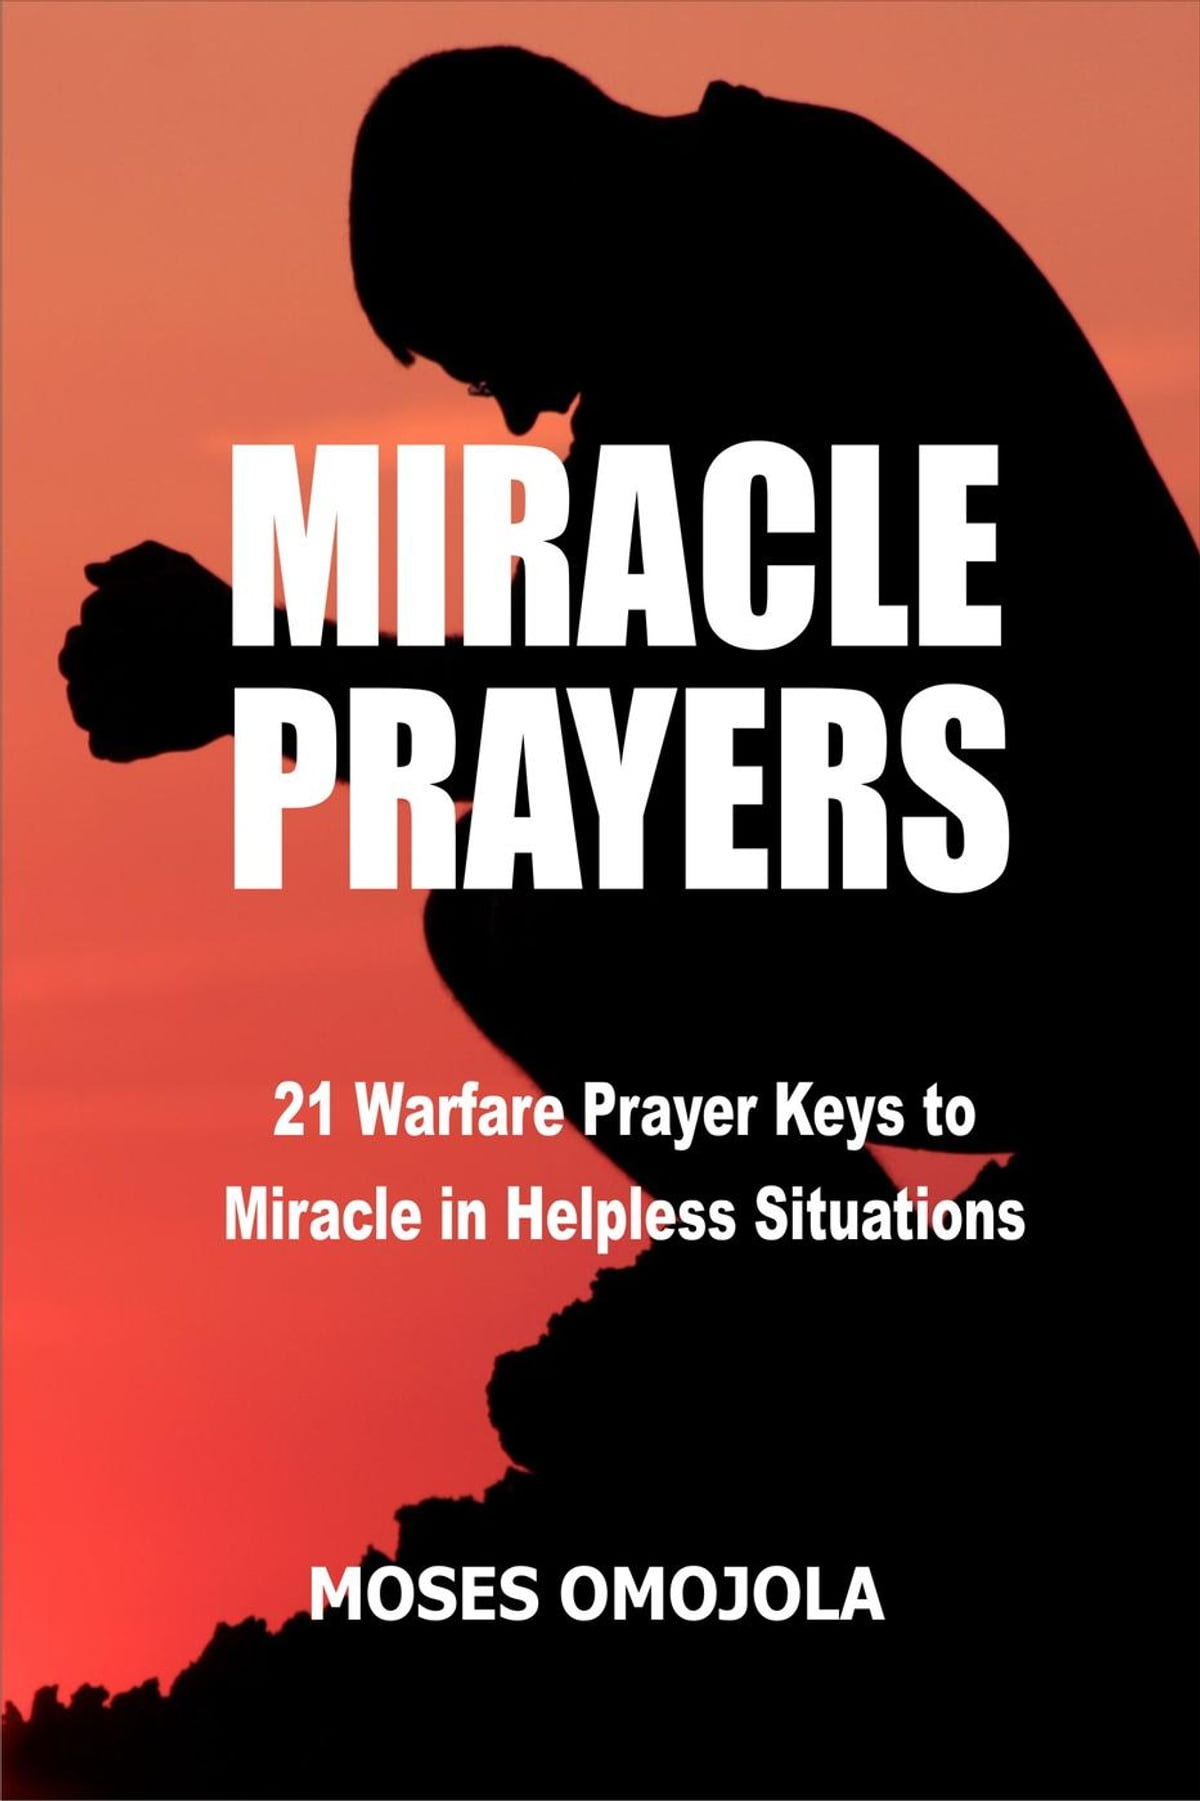 Miracle Prayers: 21 Warfare Prayer Keys to Miracle in Helpless Situations  ebook by Moses Omojola - Rakuten Kobo